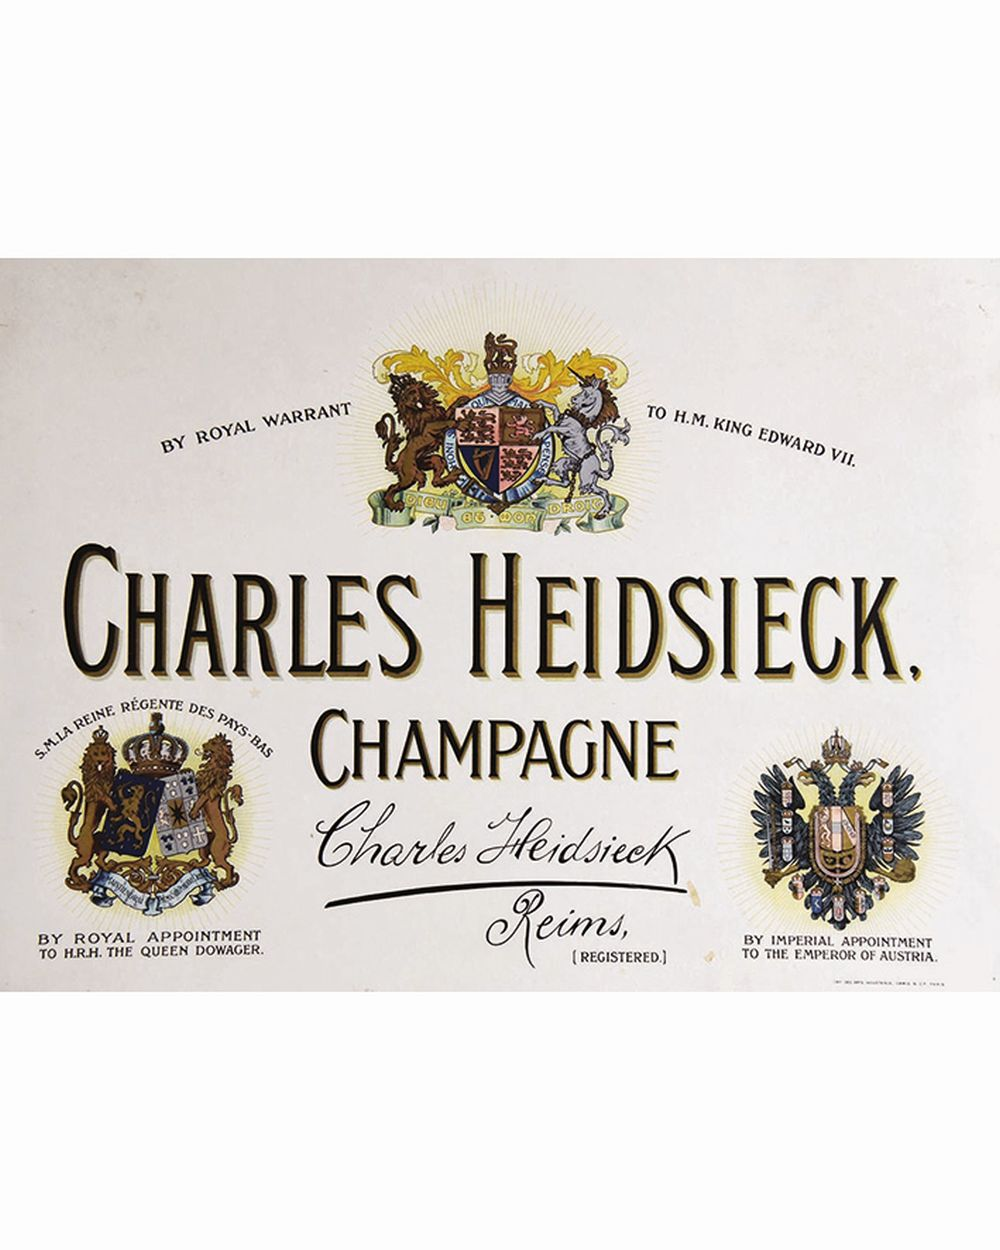 Charles Heidsieck Champagne -  By Royal Warrant Edward VII - Emperor Of Austria     vers 1900  Reims (Marne)